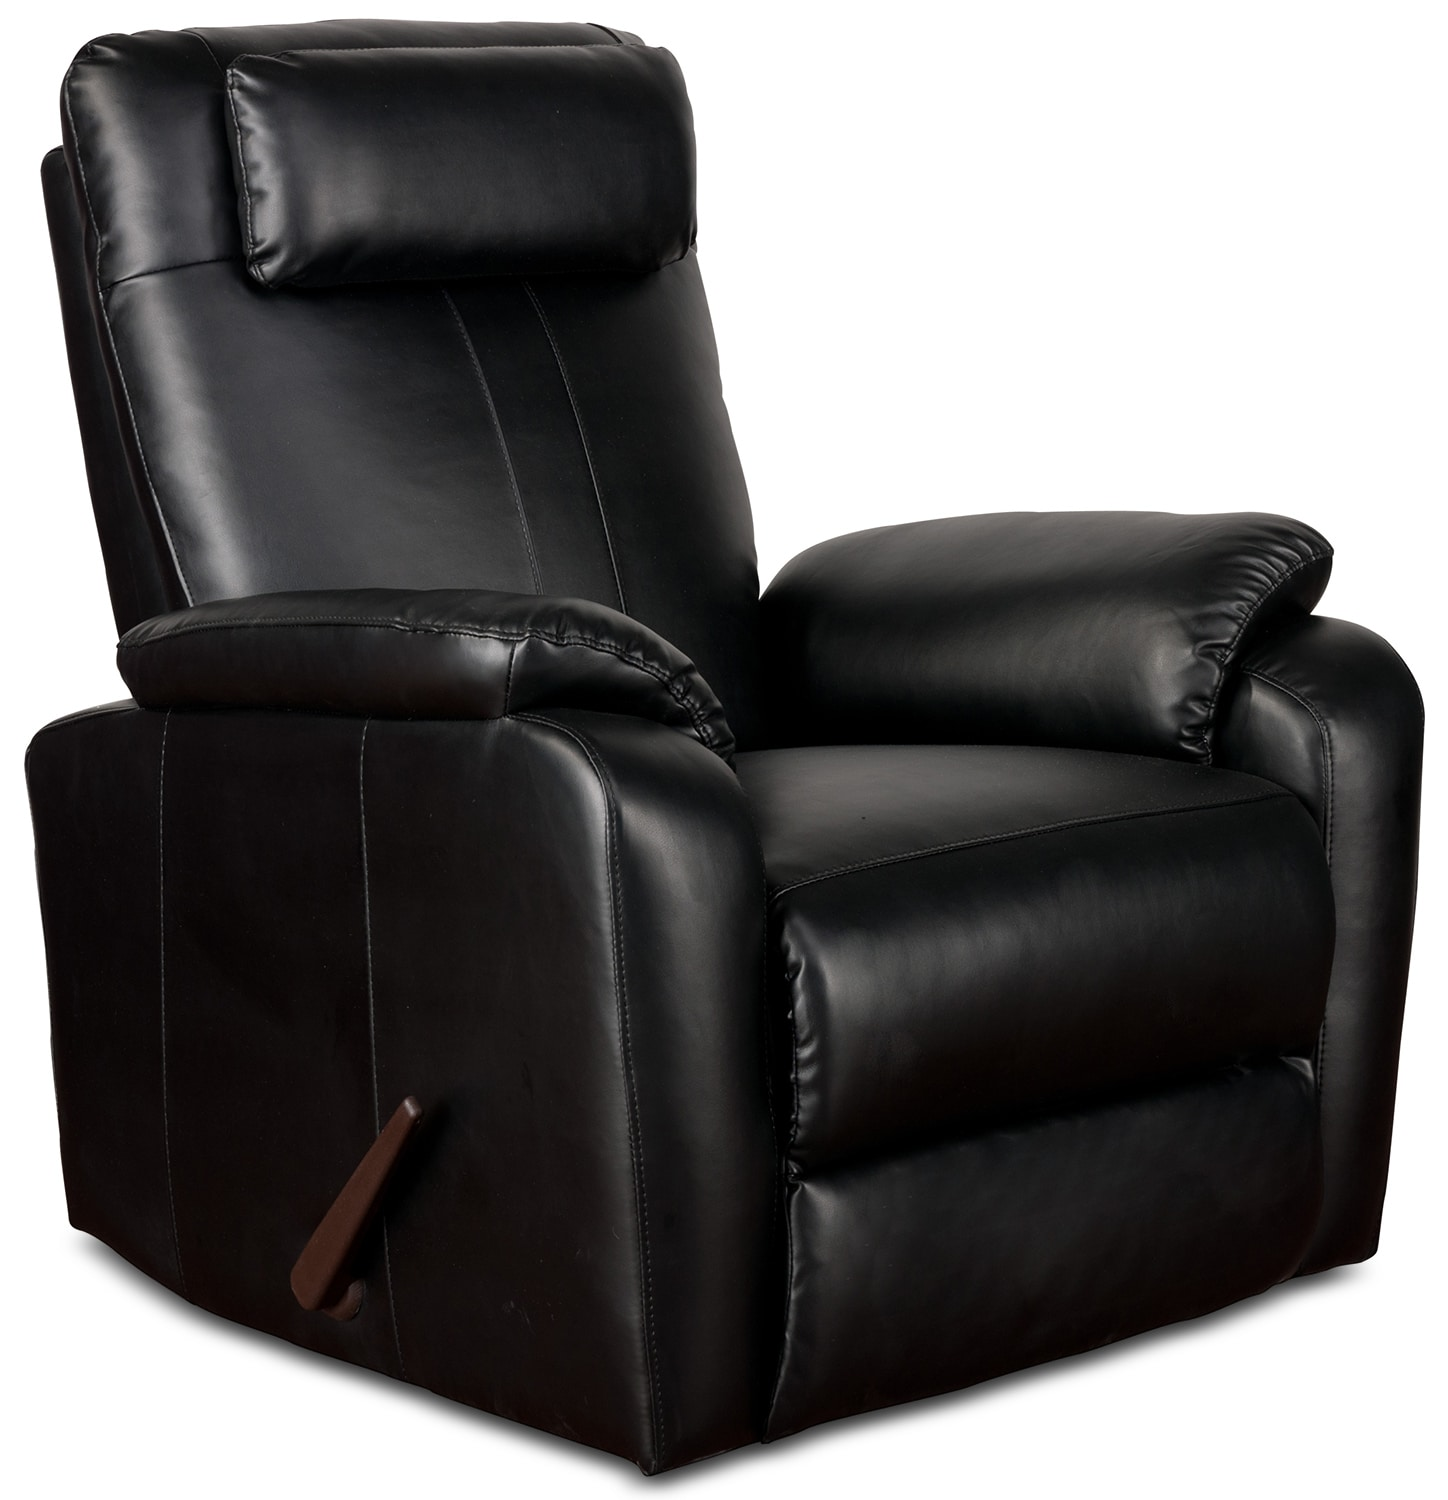 Sparta Rocker Recliner - Black | Value City Furniture on Sparta Outdoor Living id=41308